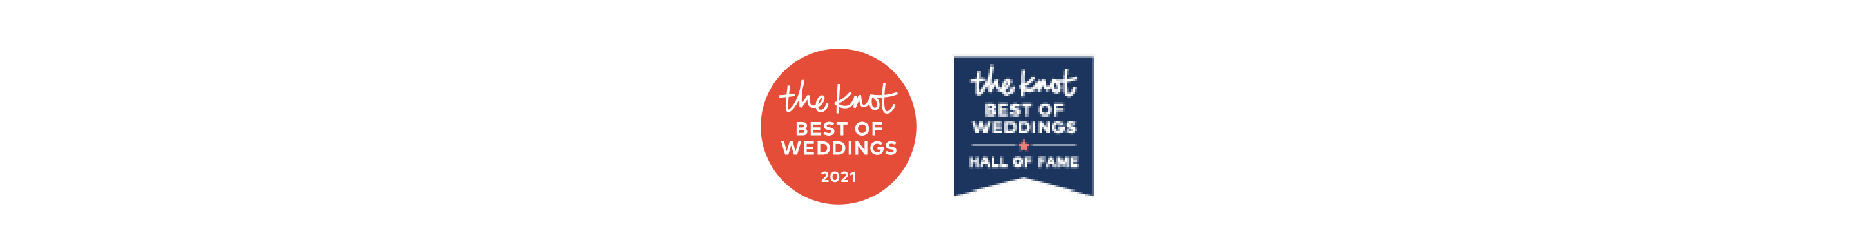 J. Scott Catering Named Winner of The Knot Best of Weddings 2021 and Inducted into The Knot Best of Weddings Hall of Fame